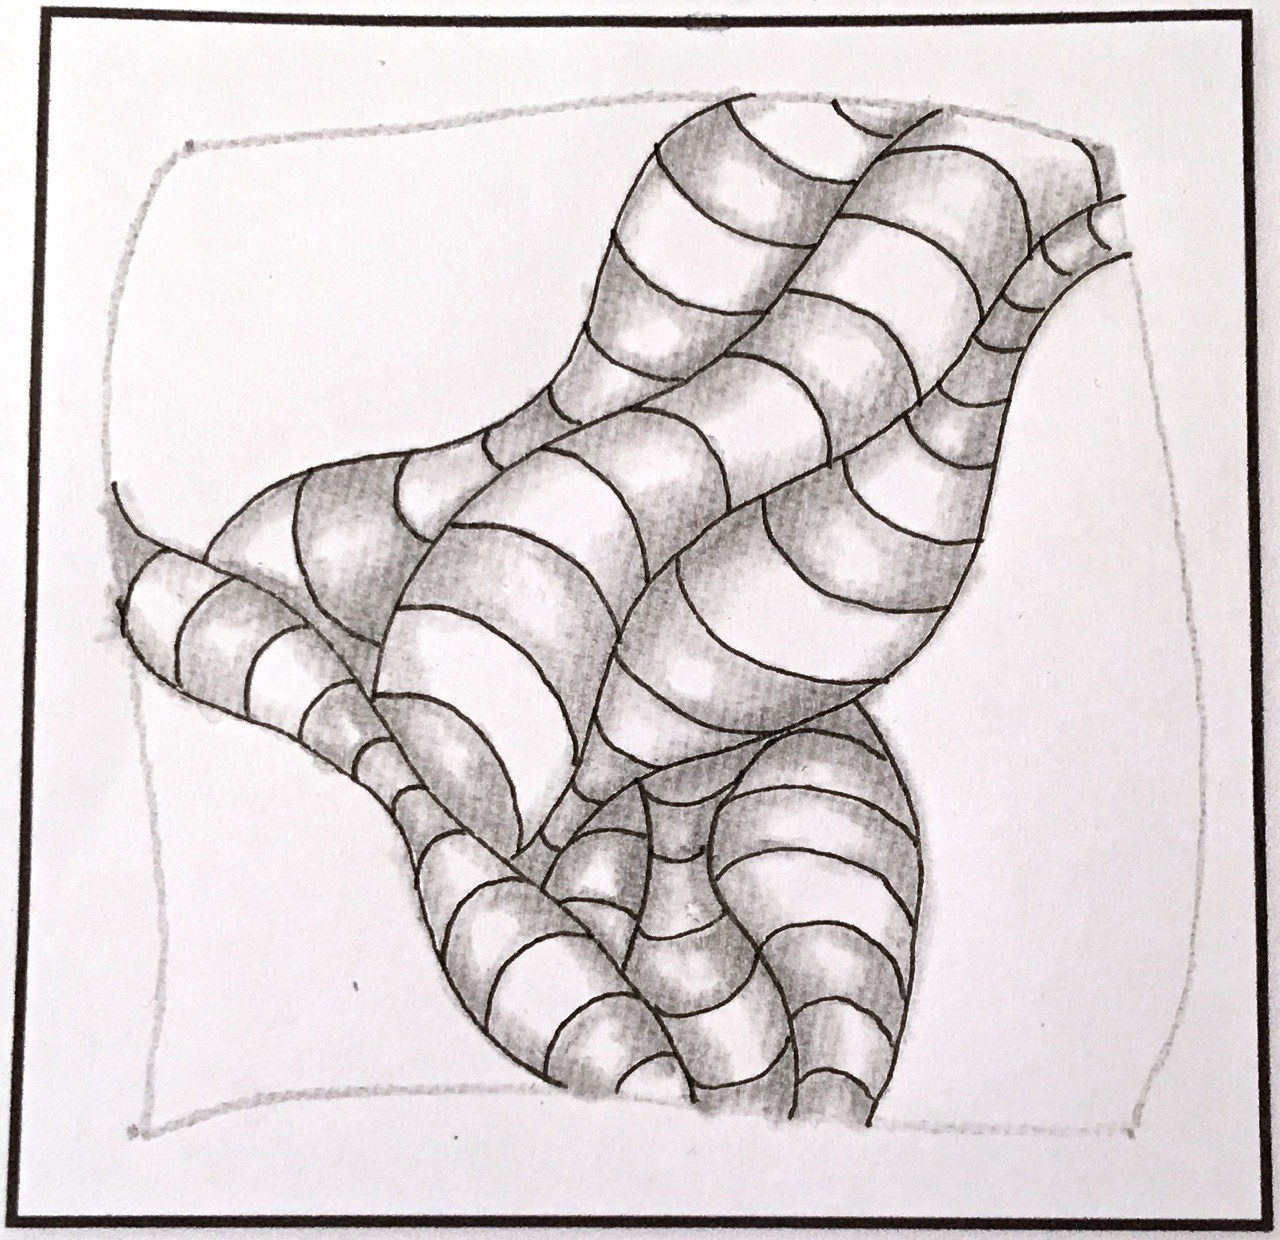 How To Draw The Zentangle Pattern Cuddles With Shading